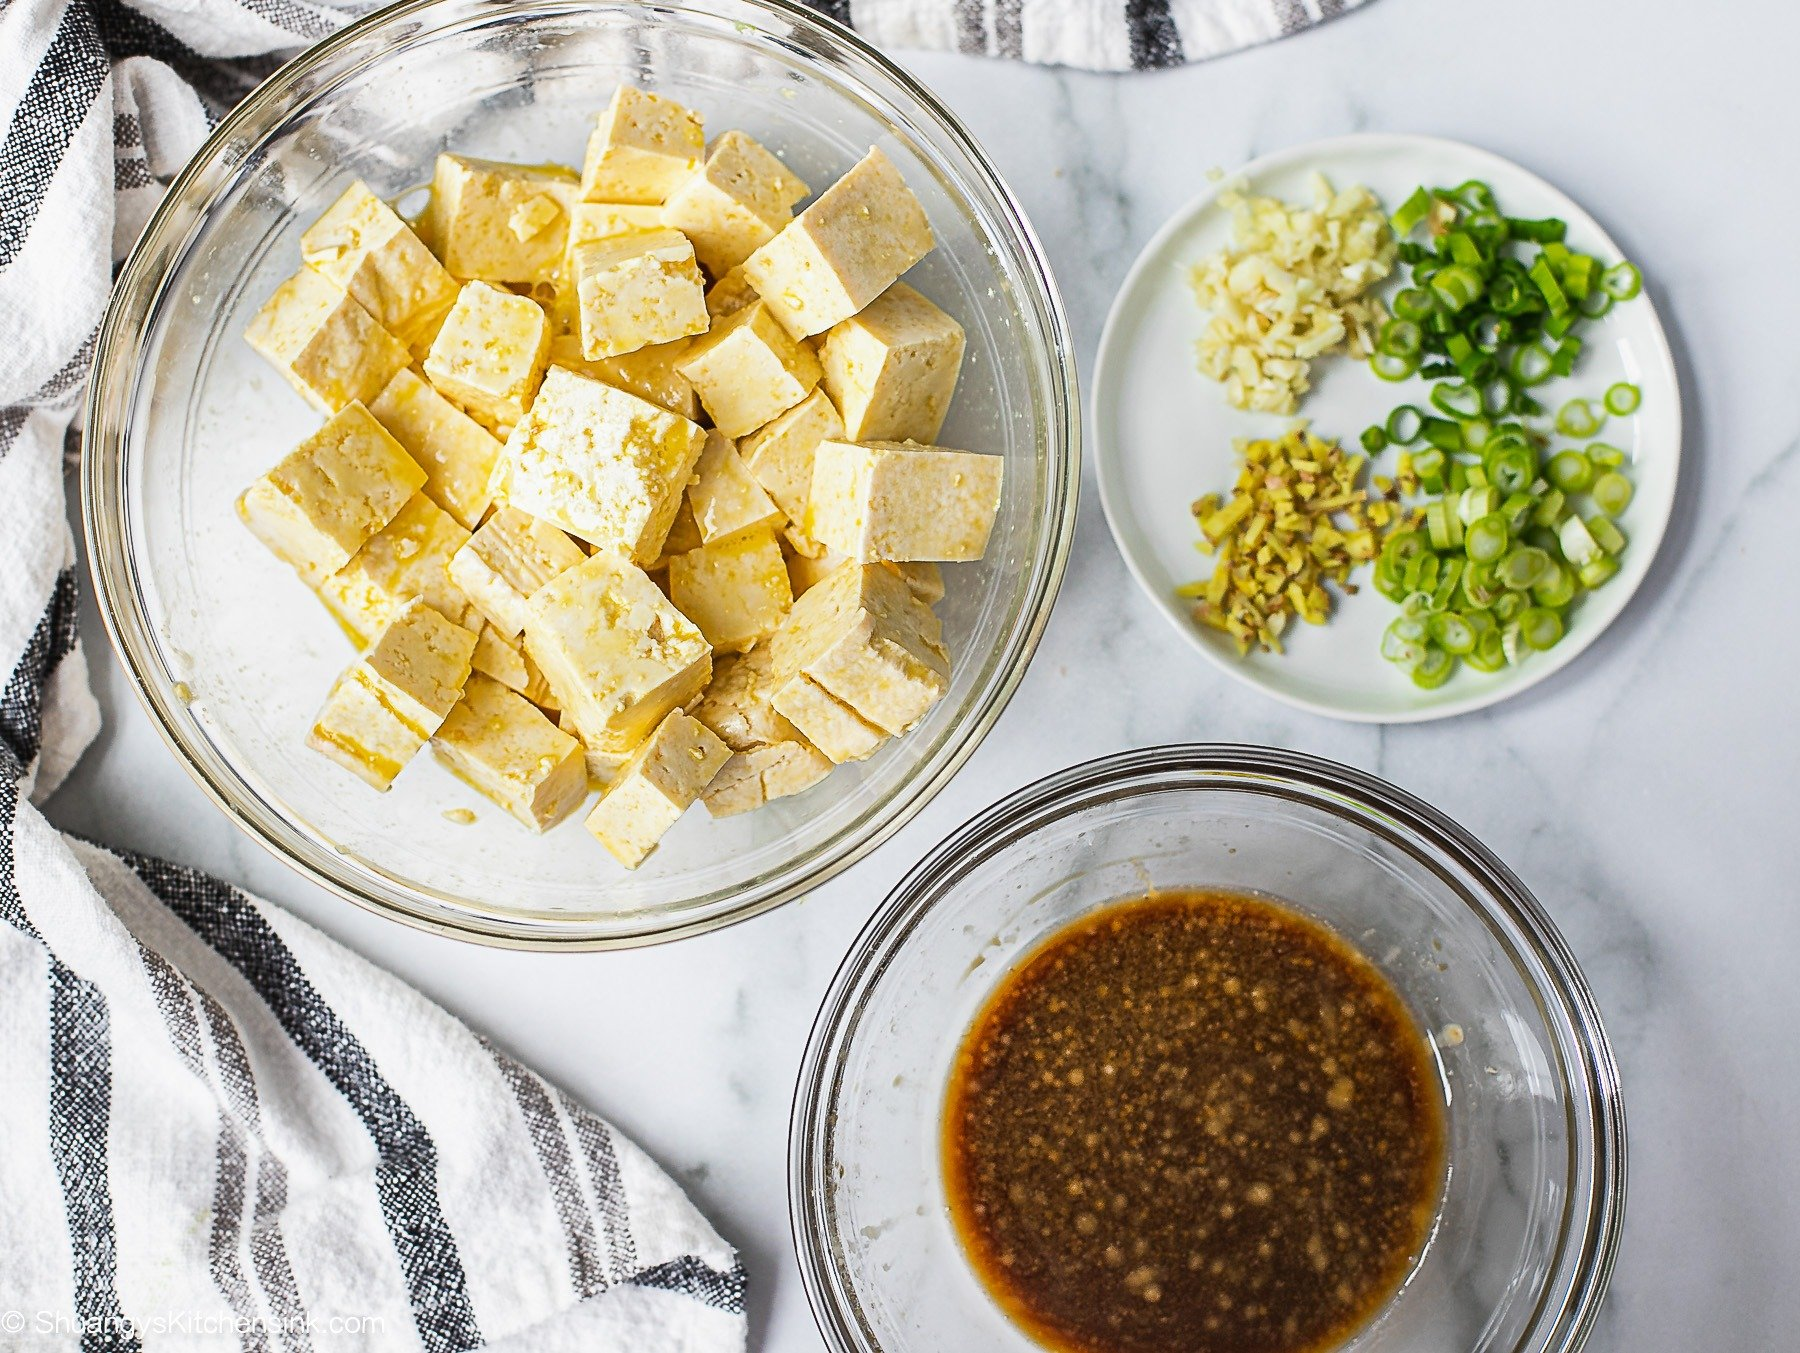 Ingredients to make a stir fry. one bowl of tofu cut in cubes, one bowl of soy sauce and a plate with ginger, scallions and garlic